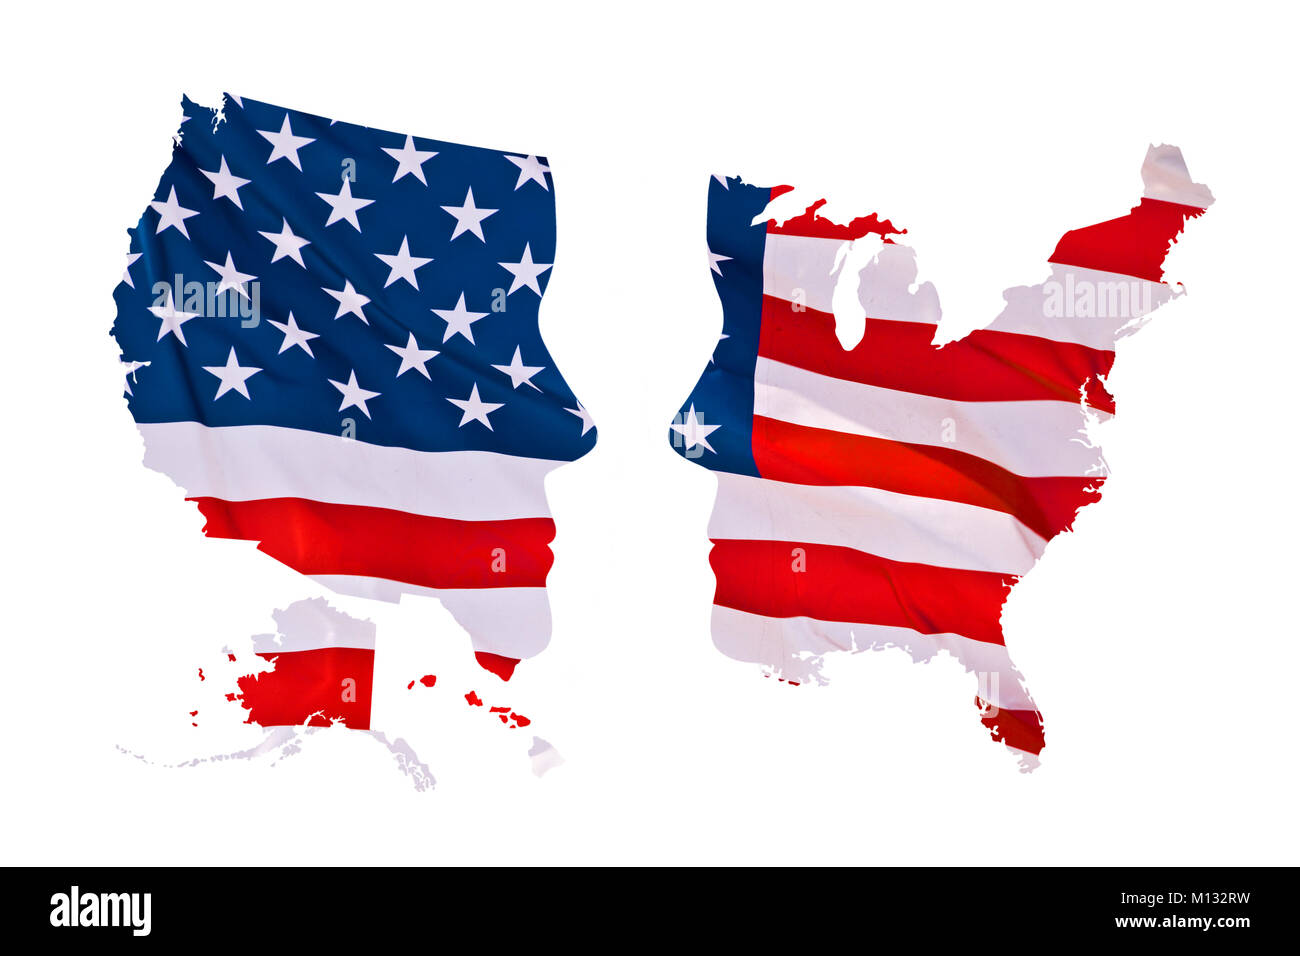 2016 US presidential elections map concept isolated on white background - Stock Image